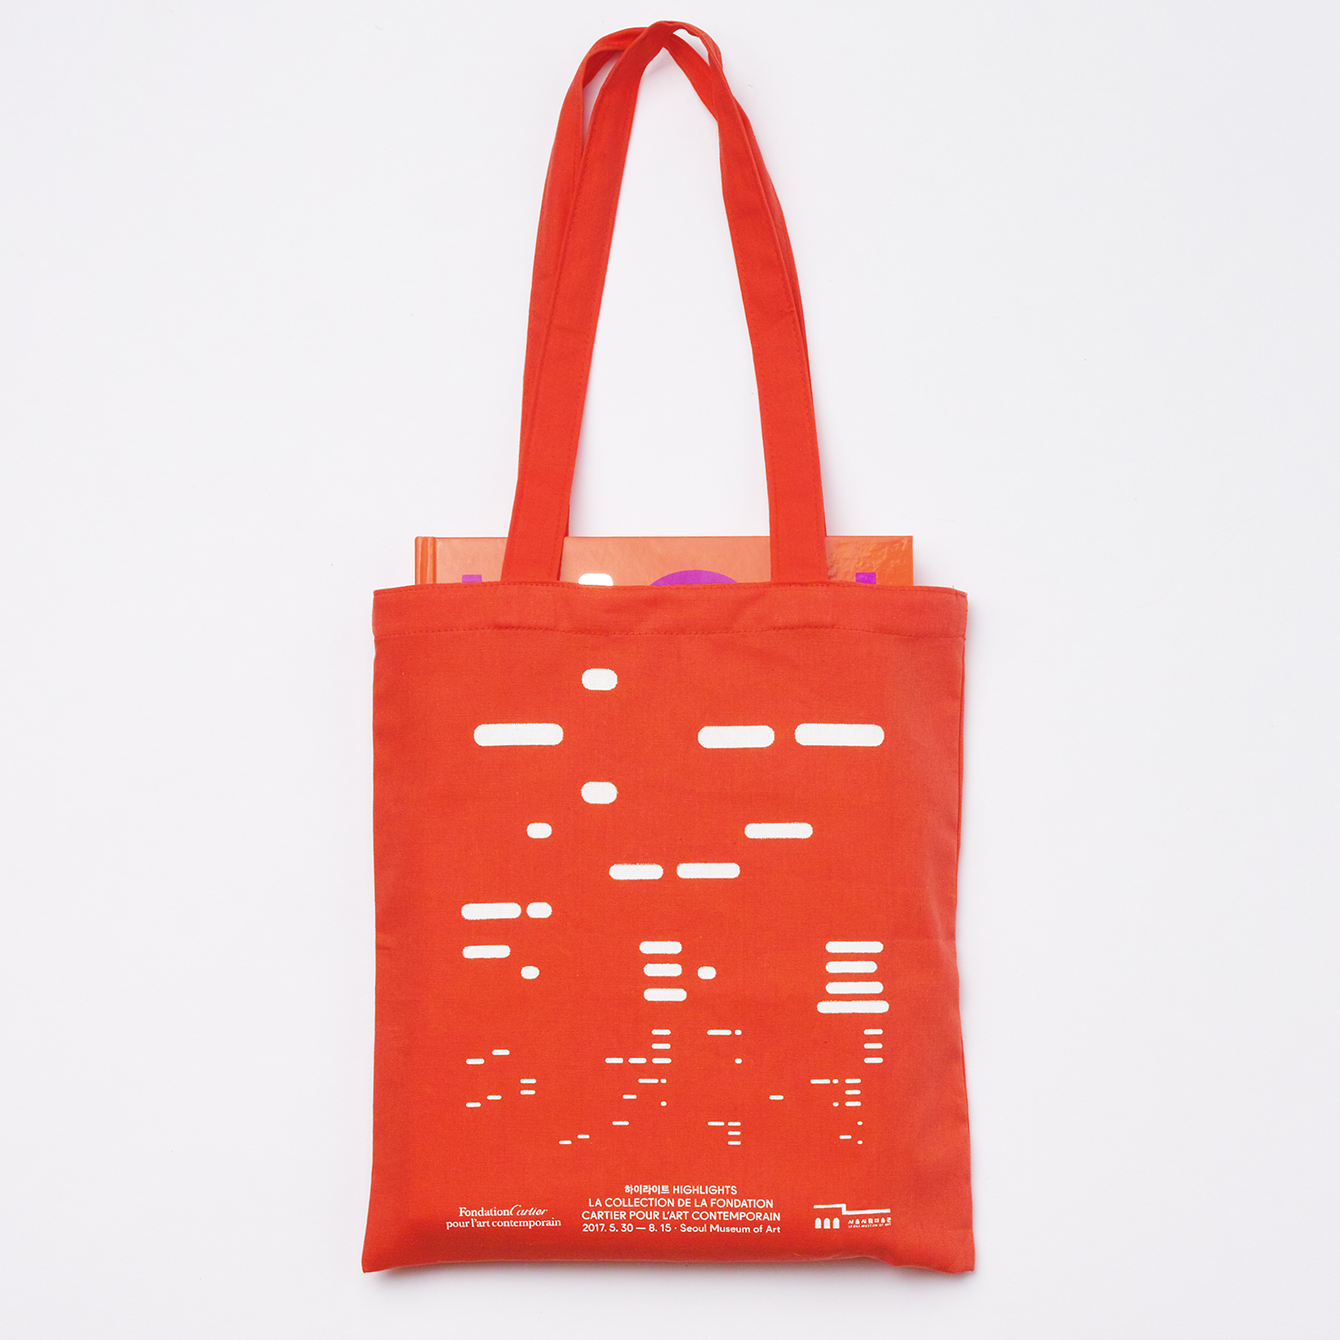 Visual identity and tote bag by Studio fnt for South Korean art exhibition Highlights at SeMA